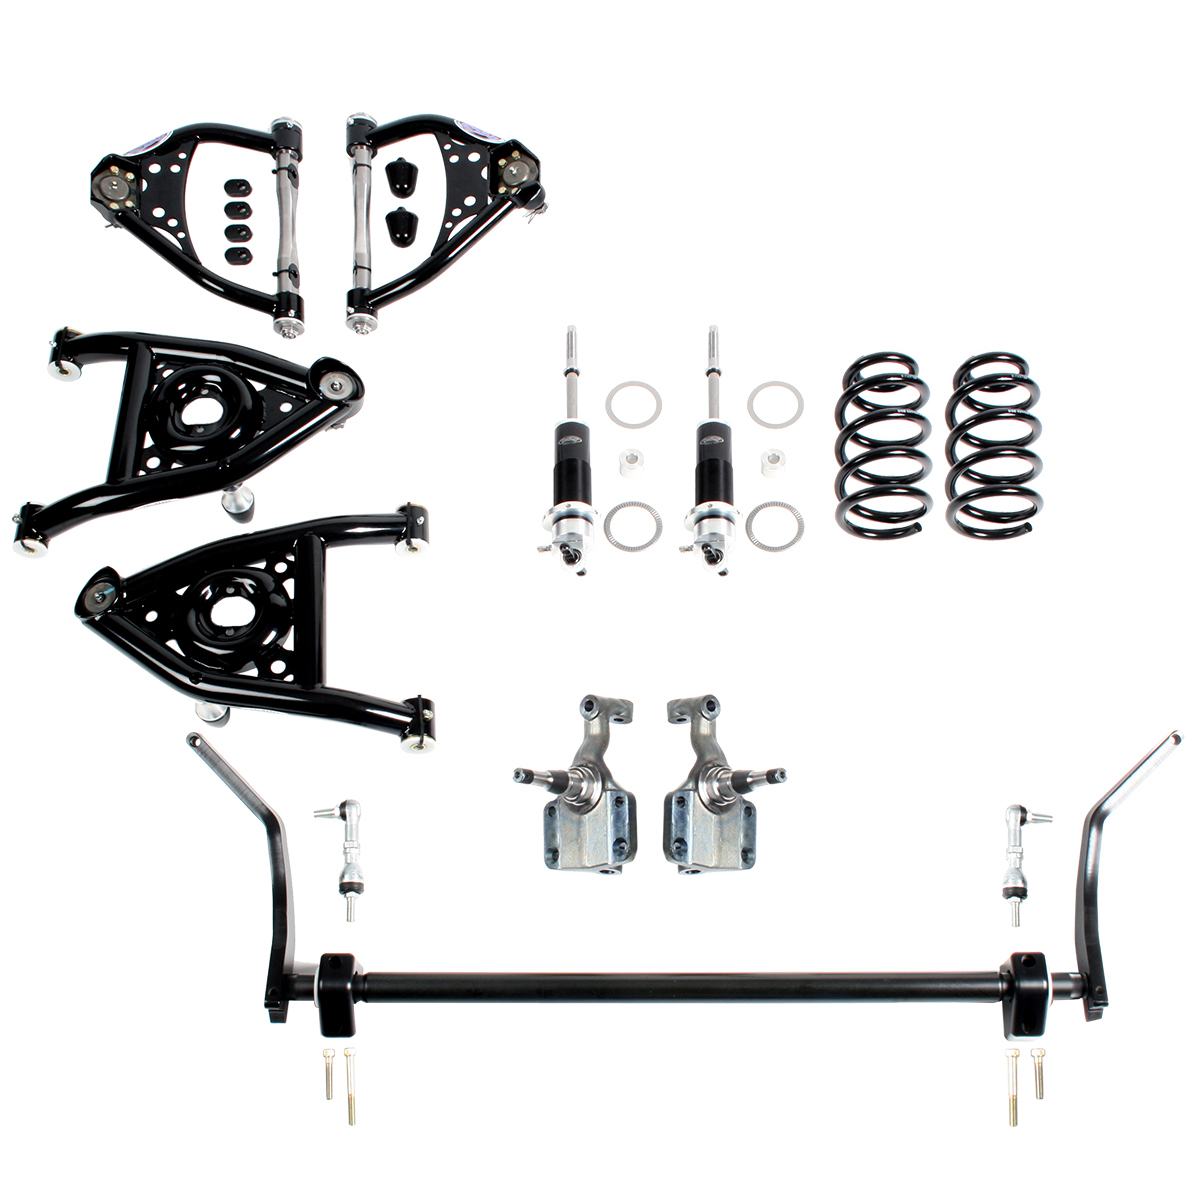 Detroit Speed  Speed Kit 2 Front Suspension Kit with Splined Sway Bar Base Shocks 1964-1966 A-Body SBC LS